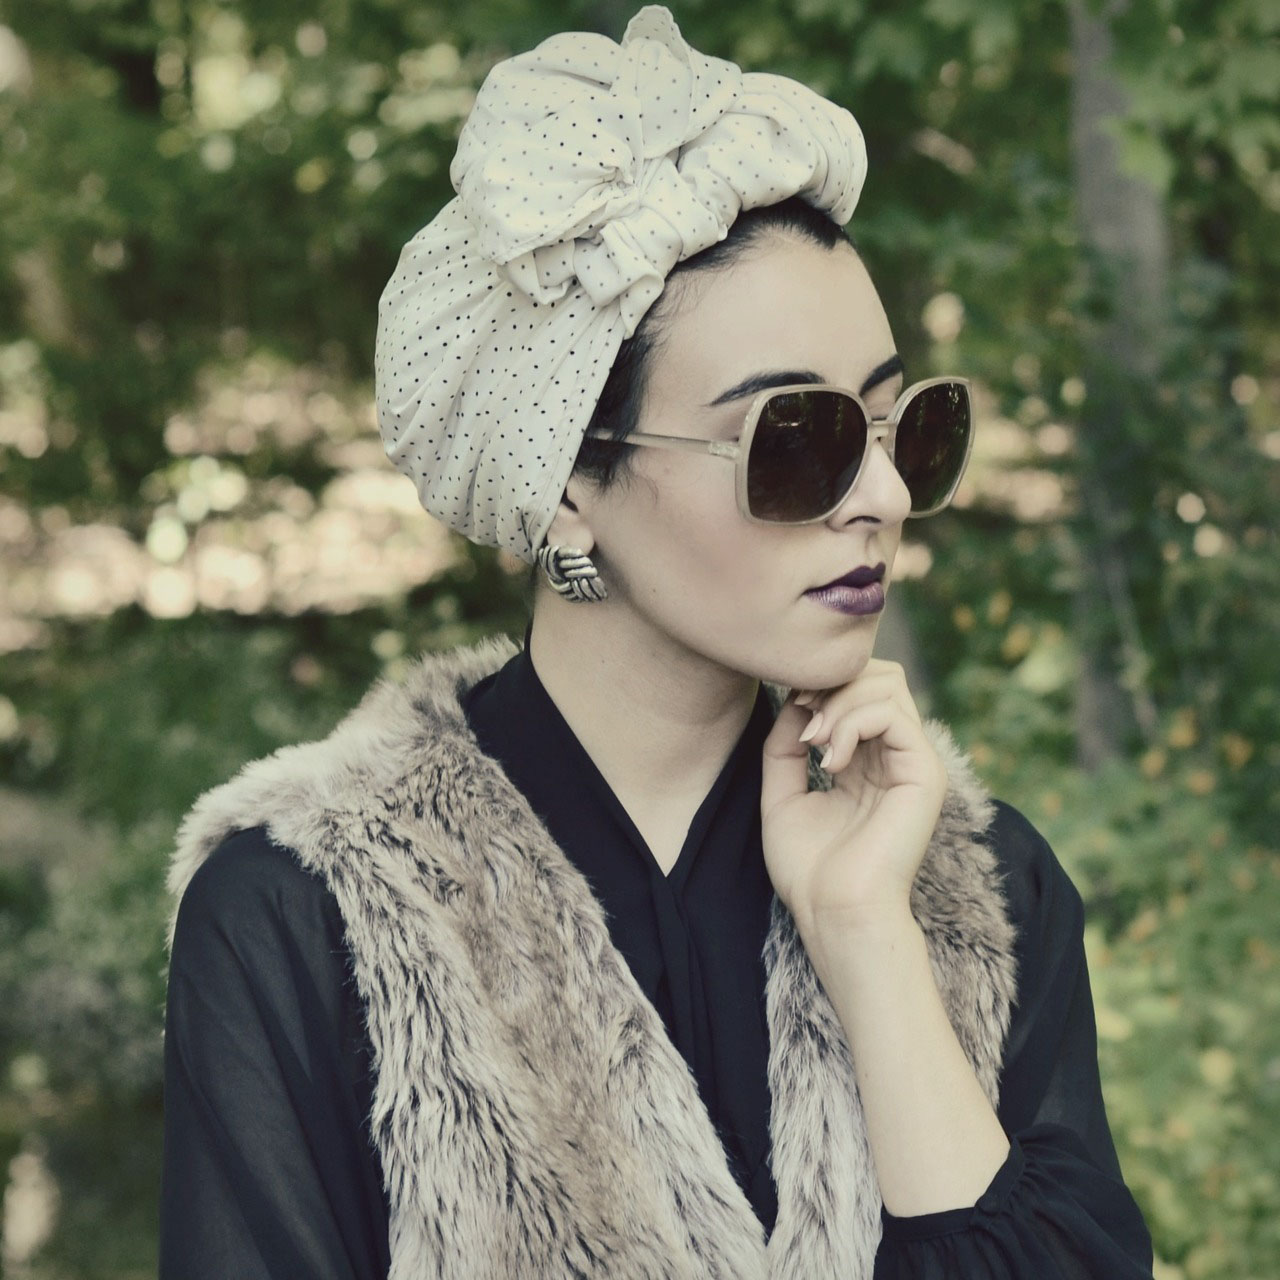 Winnie Detwa in turban, Tumblr, September 13, 2012, screenshot.